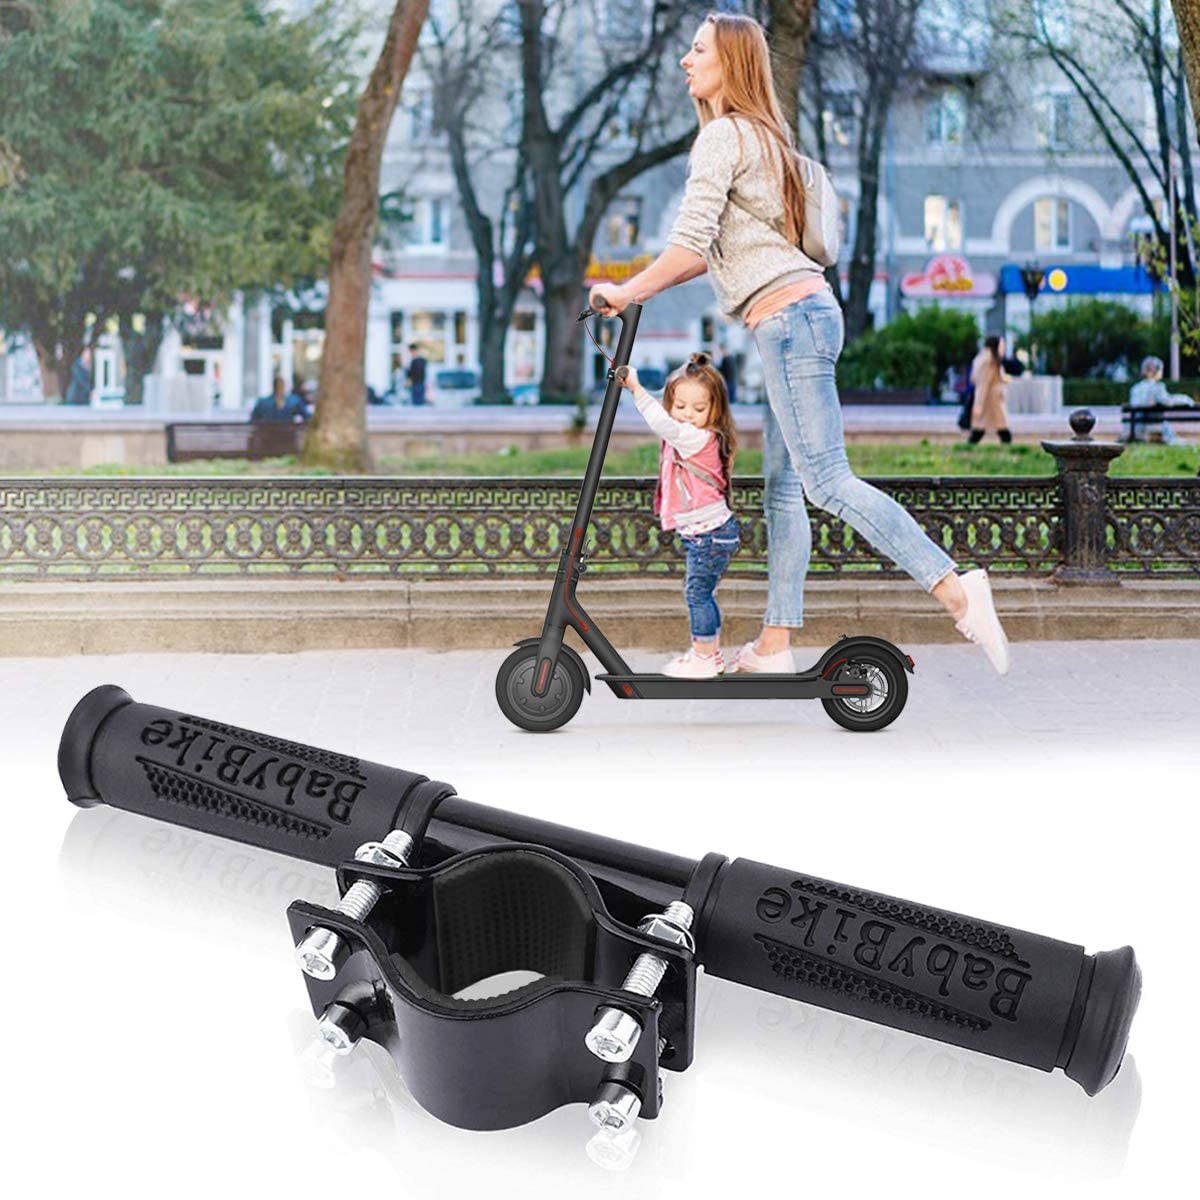 Scooter Child Armrest Electric Scooter Child Kids Armrest Handrail Light para M365 Scooter Handrail Accesorios